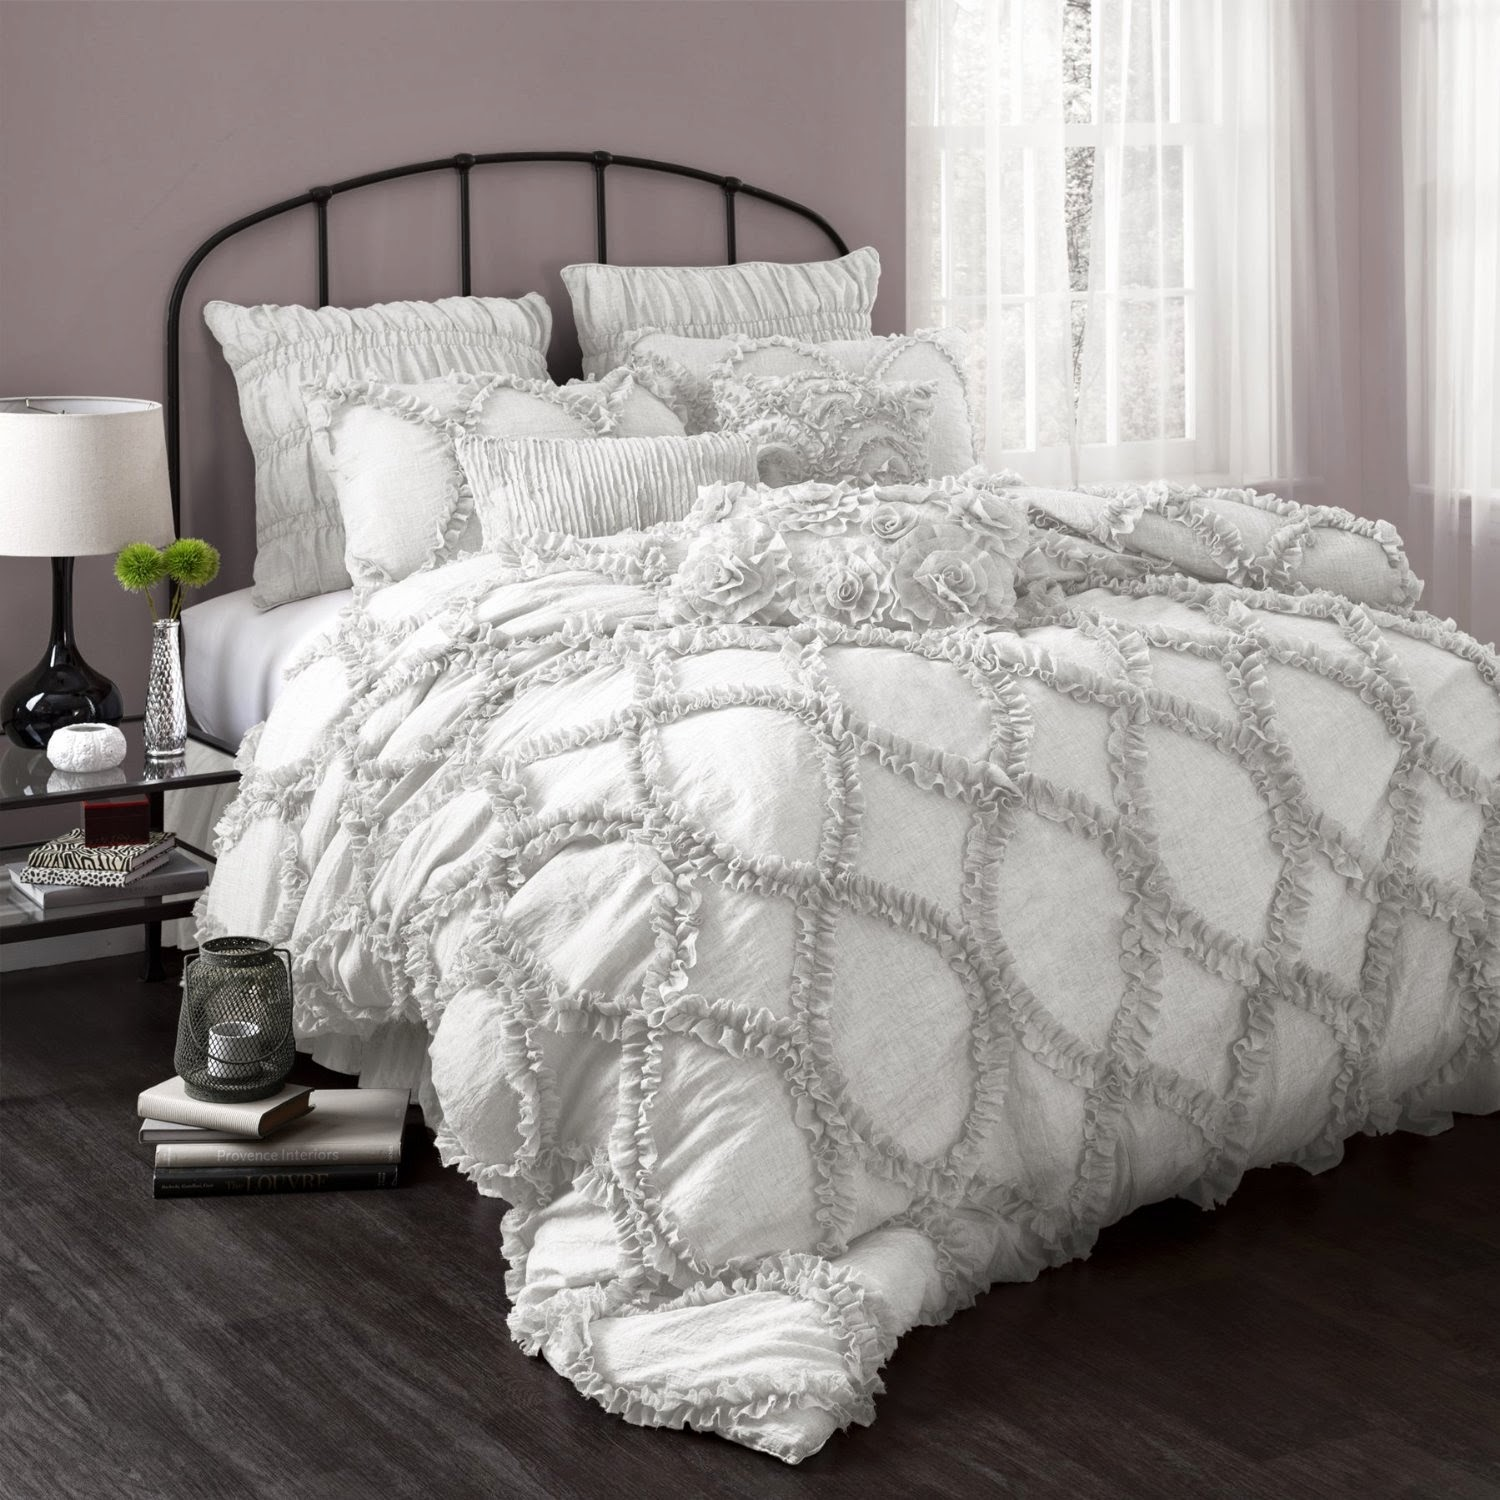 Silver & Gray Bedding Sets Picking a color for a bedding set is the fun part of choosing bedding! Gray is a versatile color; you can find gray and silver bedding sets in all styles and patterns, from bold contemporary patterns to an elegant ruffled bedding set.